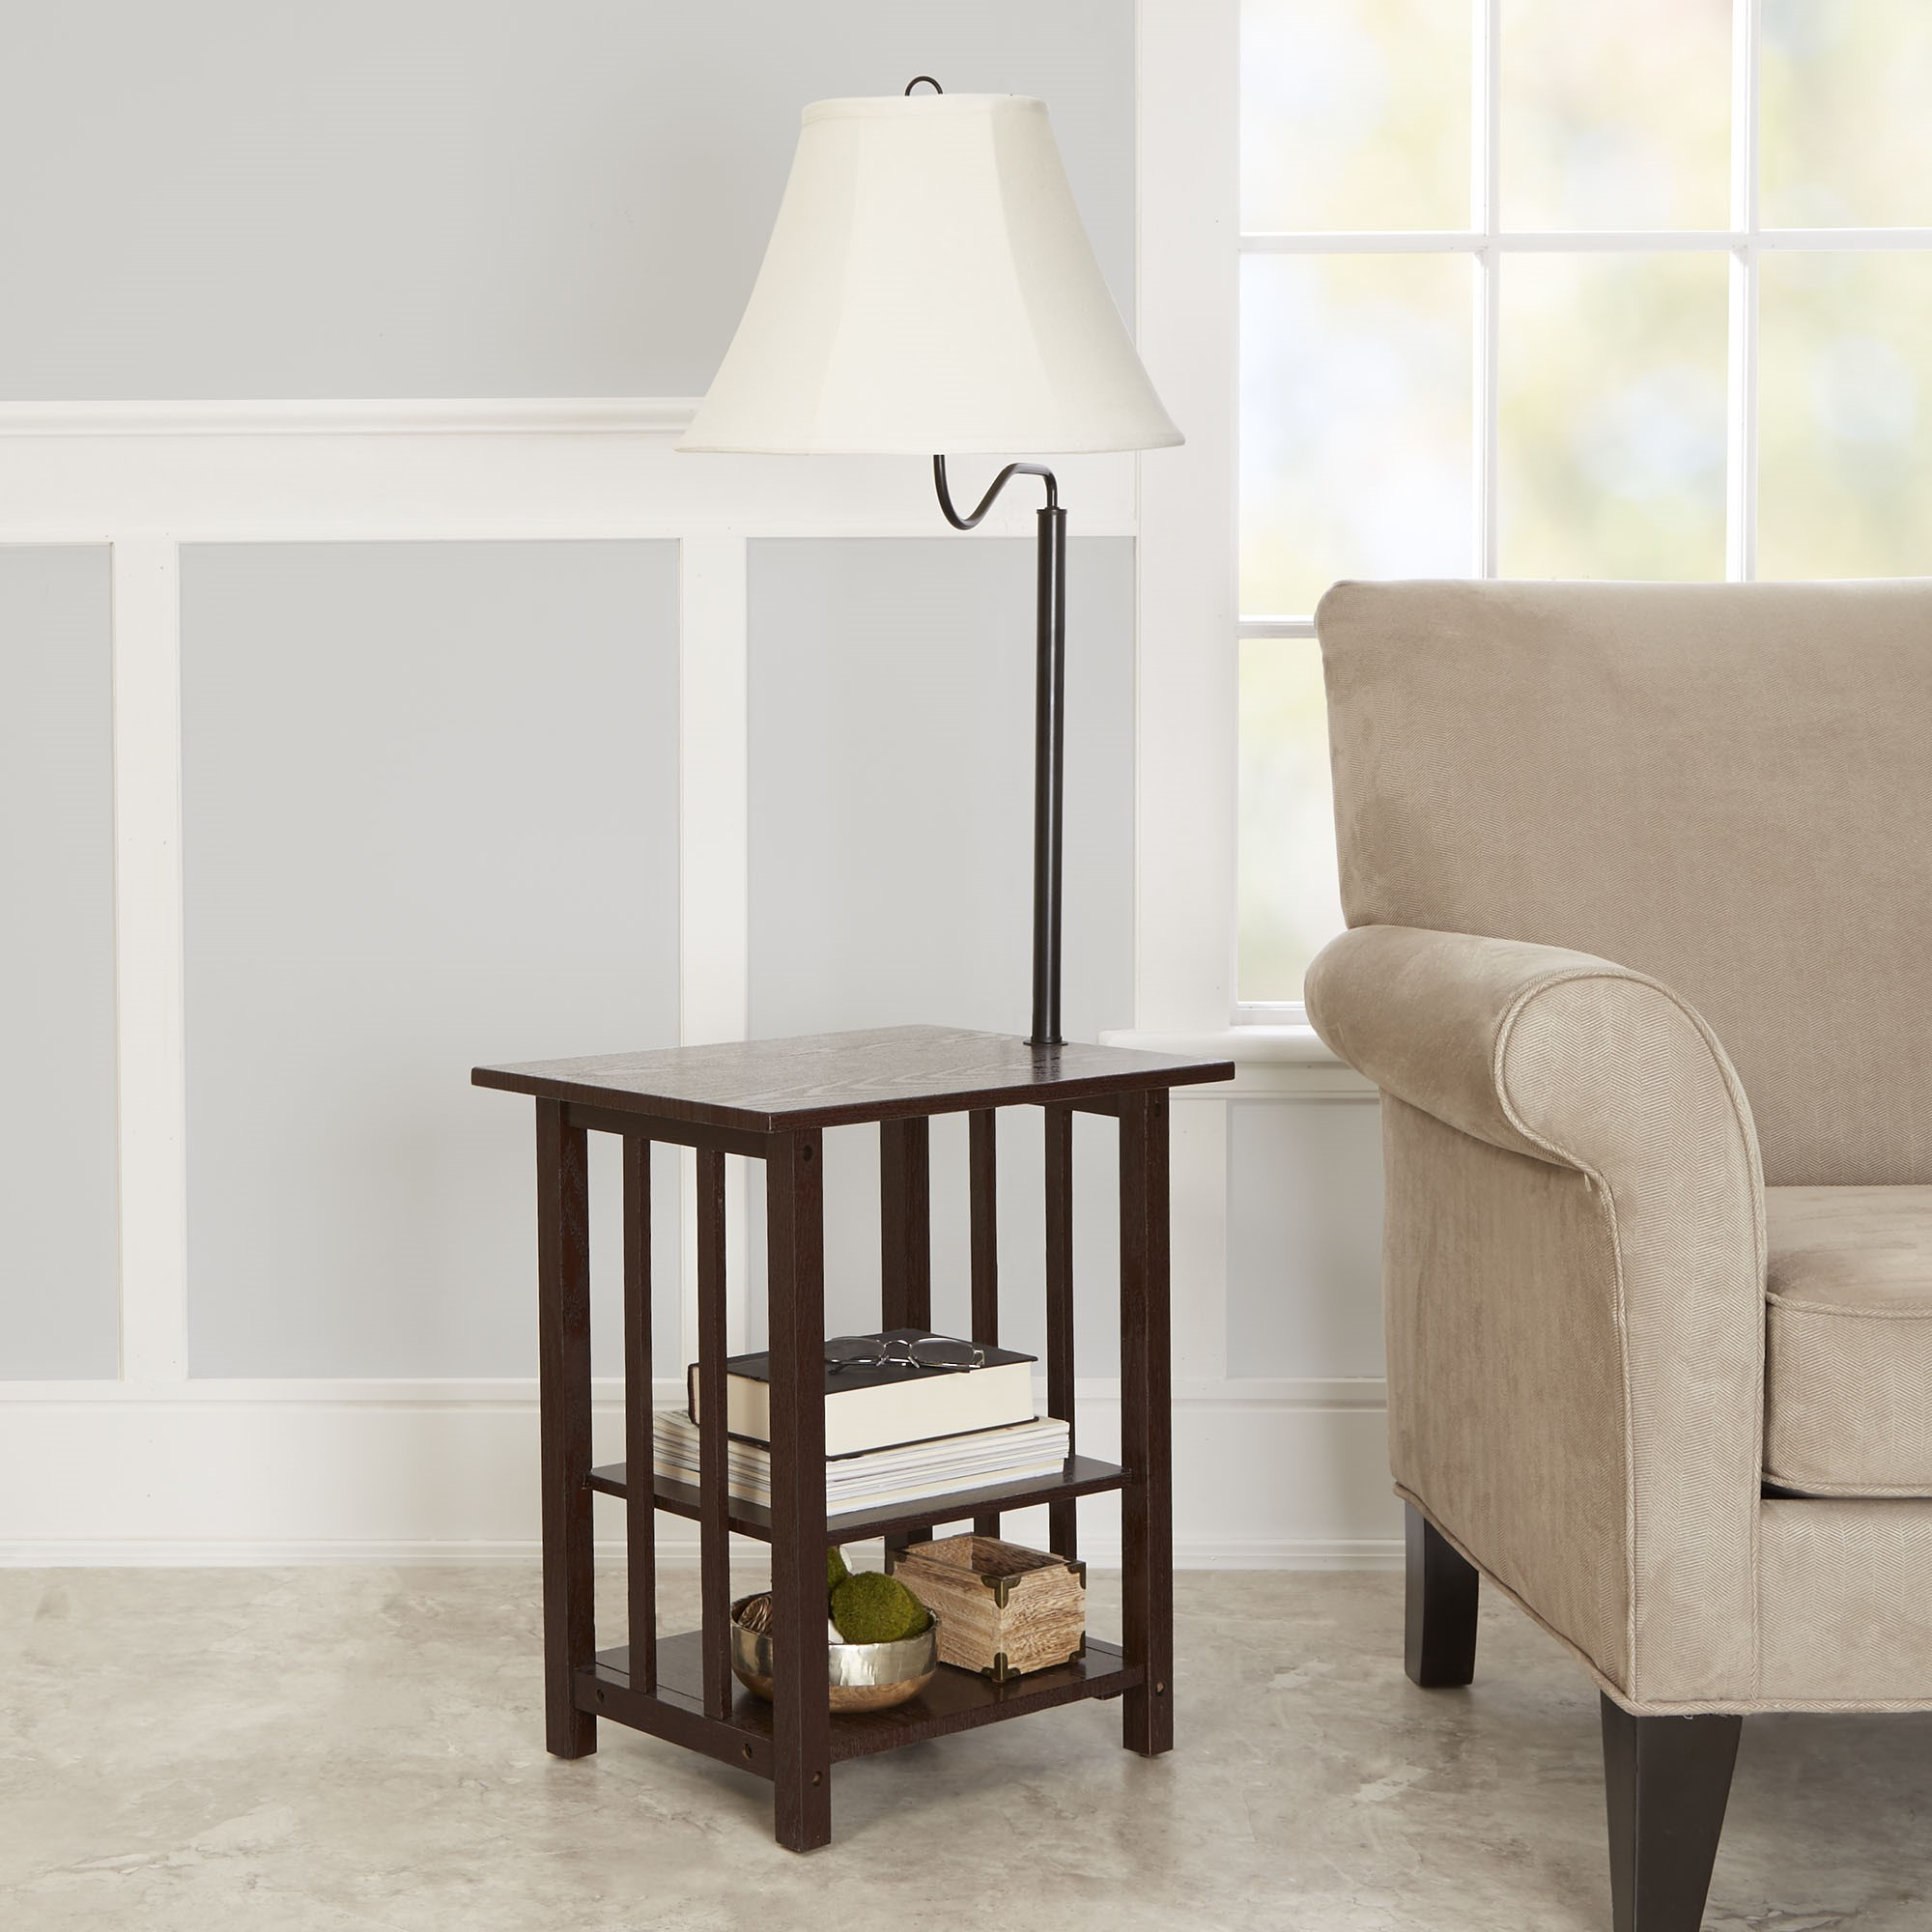 Better Homes and Gardens 3-Rack End Table Floor Lamp, Espresso Finish